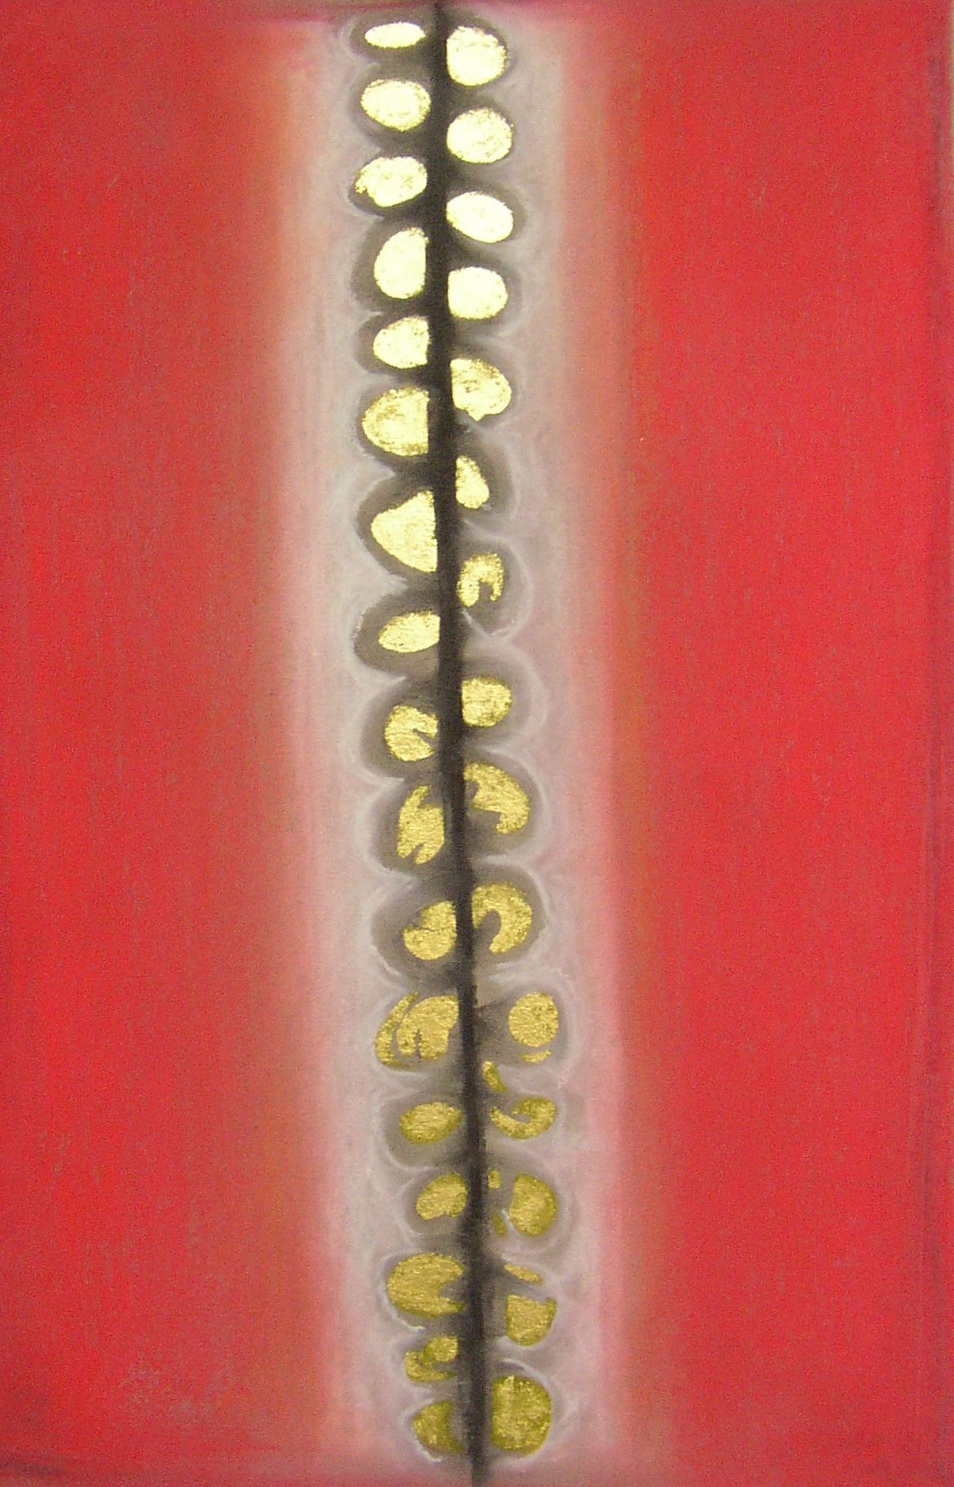 Regan O'Callaghan Savitri spine, pastel, gold leaf on paper, satyavan